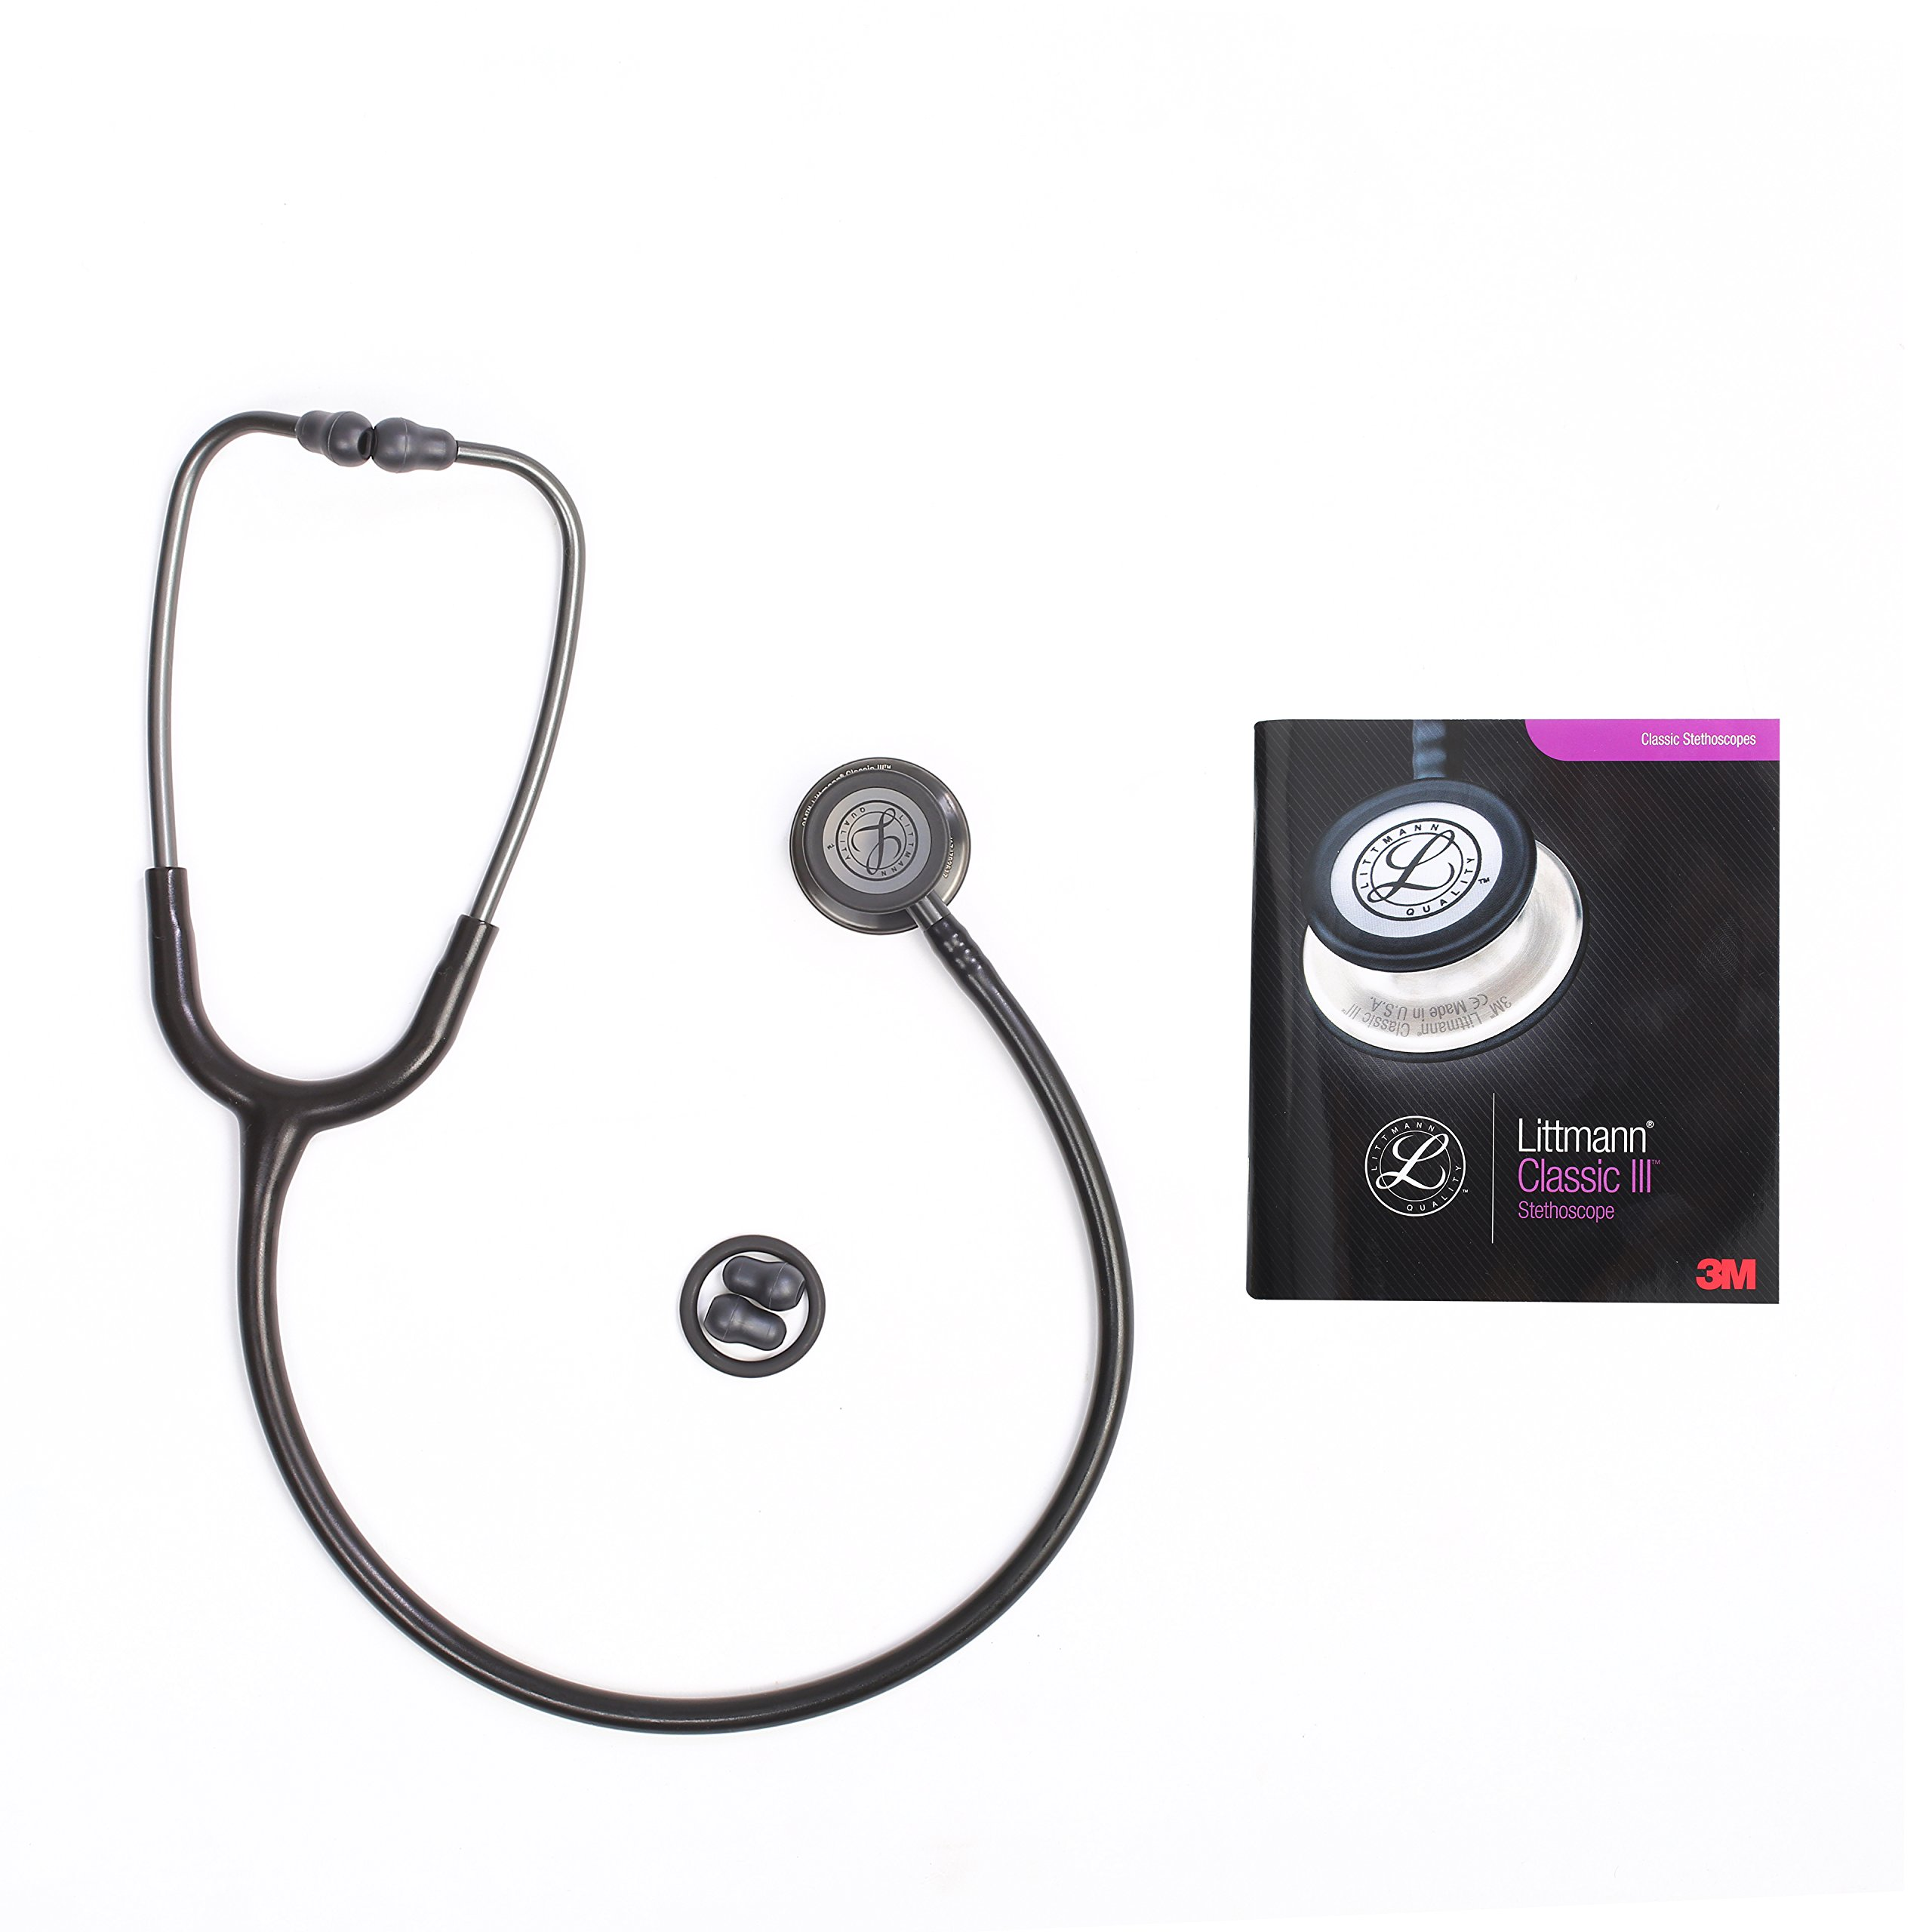 Classic III Stethoscope, for Children and Adult (5620 Black Stainless)